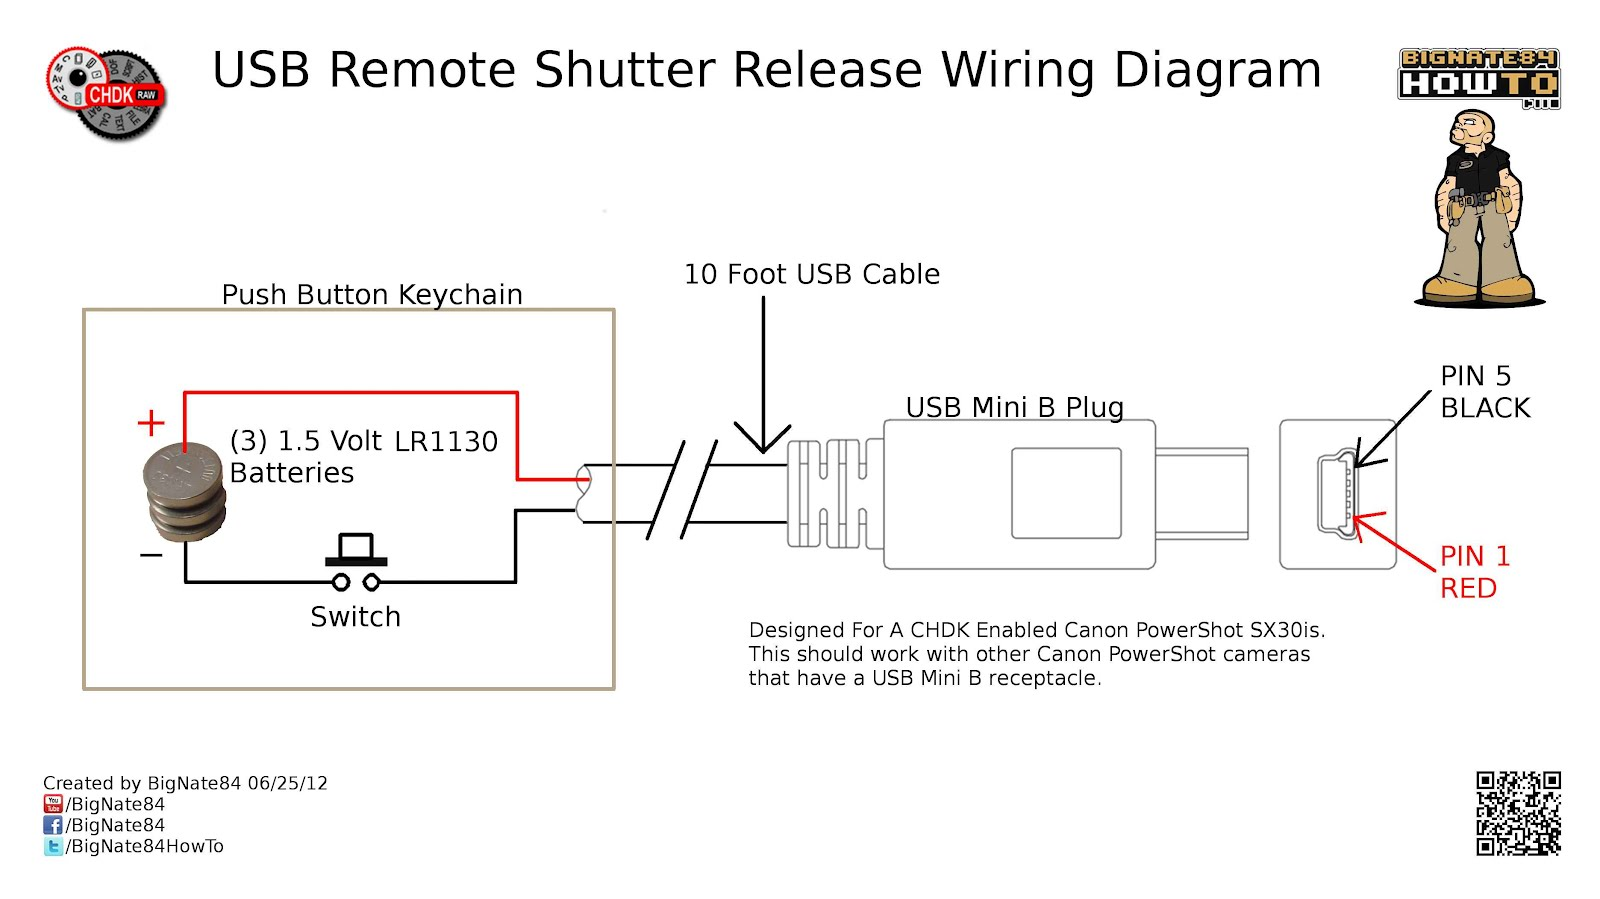 sony ps3 usb wiring diagram image - 0001 usb remote shutter wiring diagram -1.jpeg ... usb wiring diagram wiki